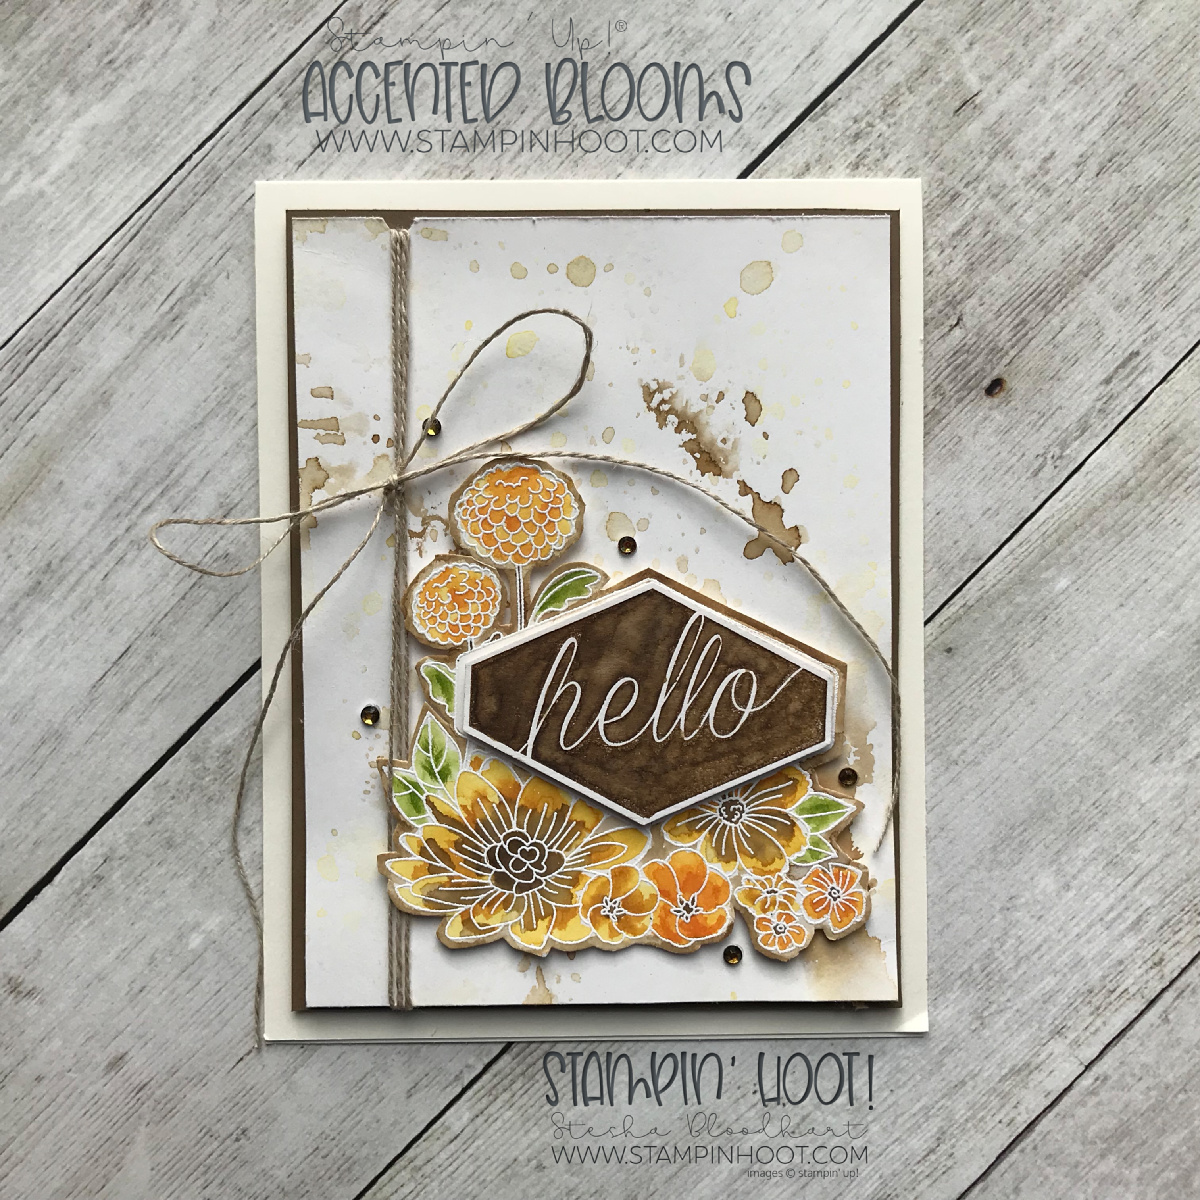 Accented Blooms Stamp Set by Stampin' Up! Hello Card by Stesha Bloodhart, Stampin' Hoot! #steshabloodhart #stampinhoot